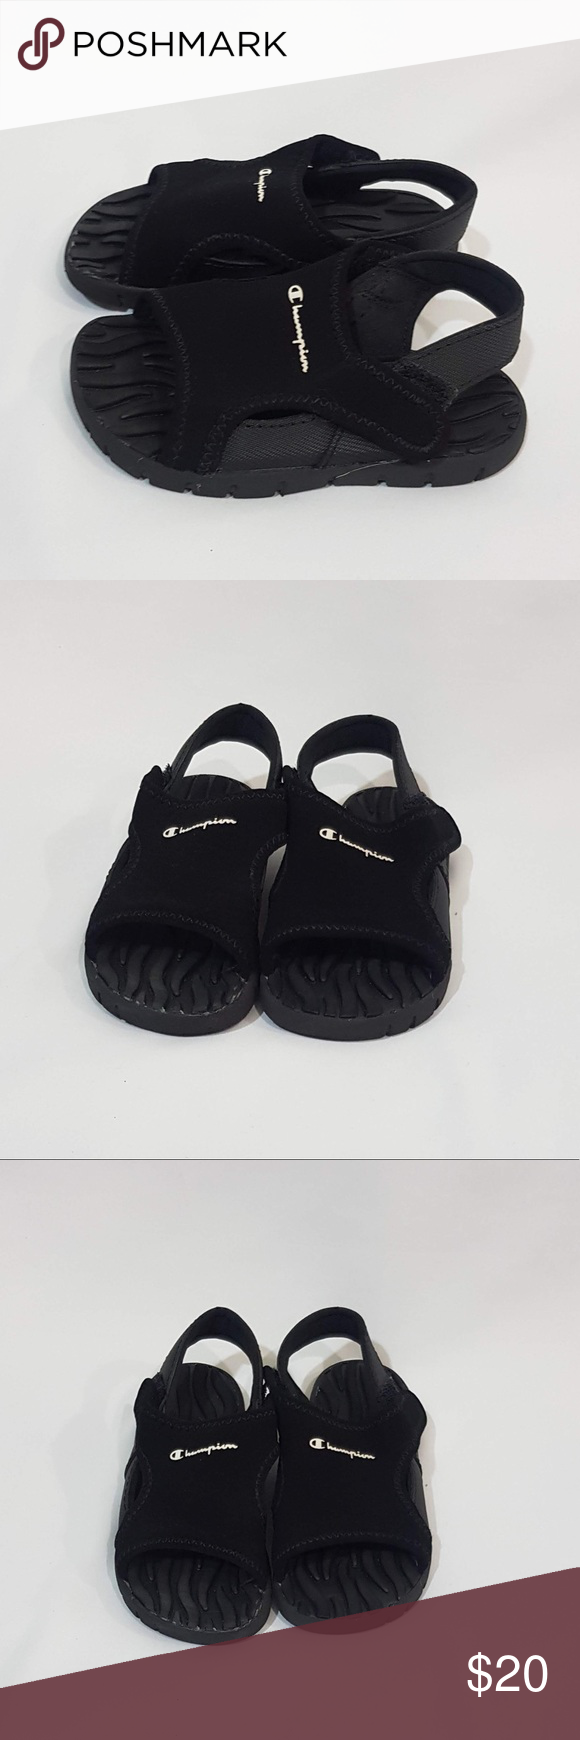 37a6812ffc172 Champion - toddler sandals Champion black sandals with the white logo.  Excellent condition. Champion Shoes Sandals   Flip Flops